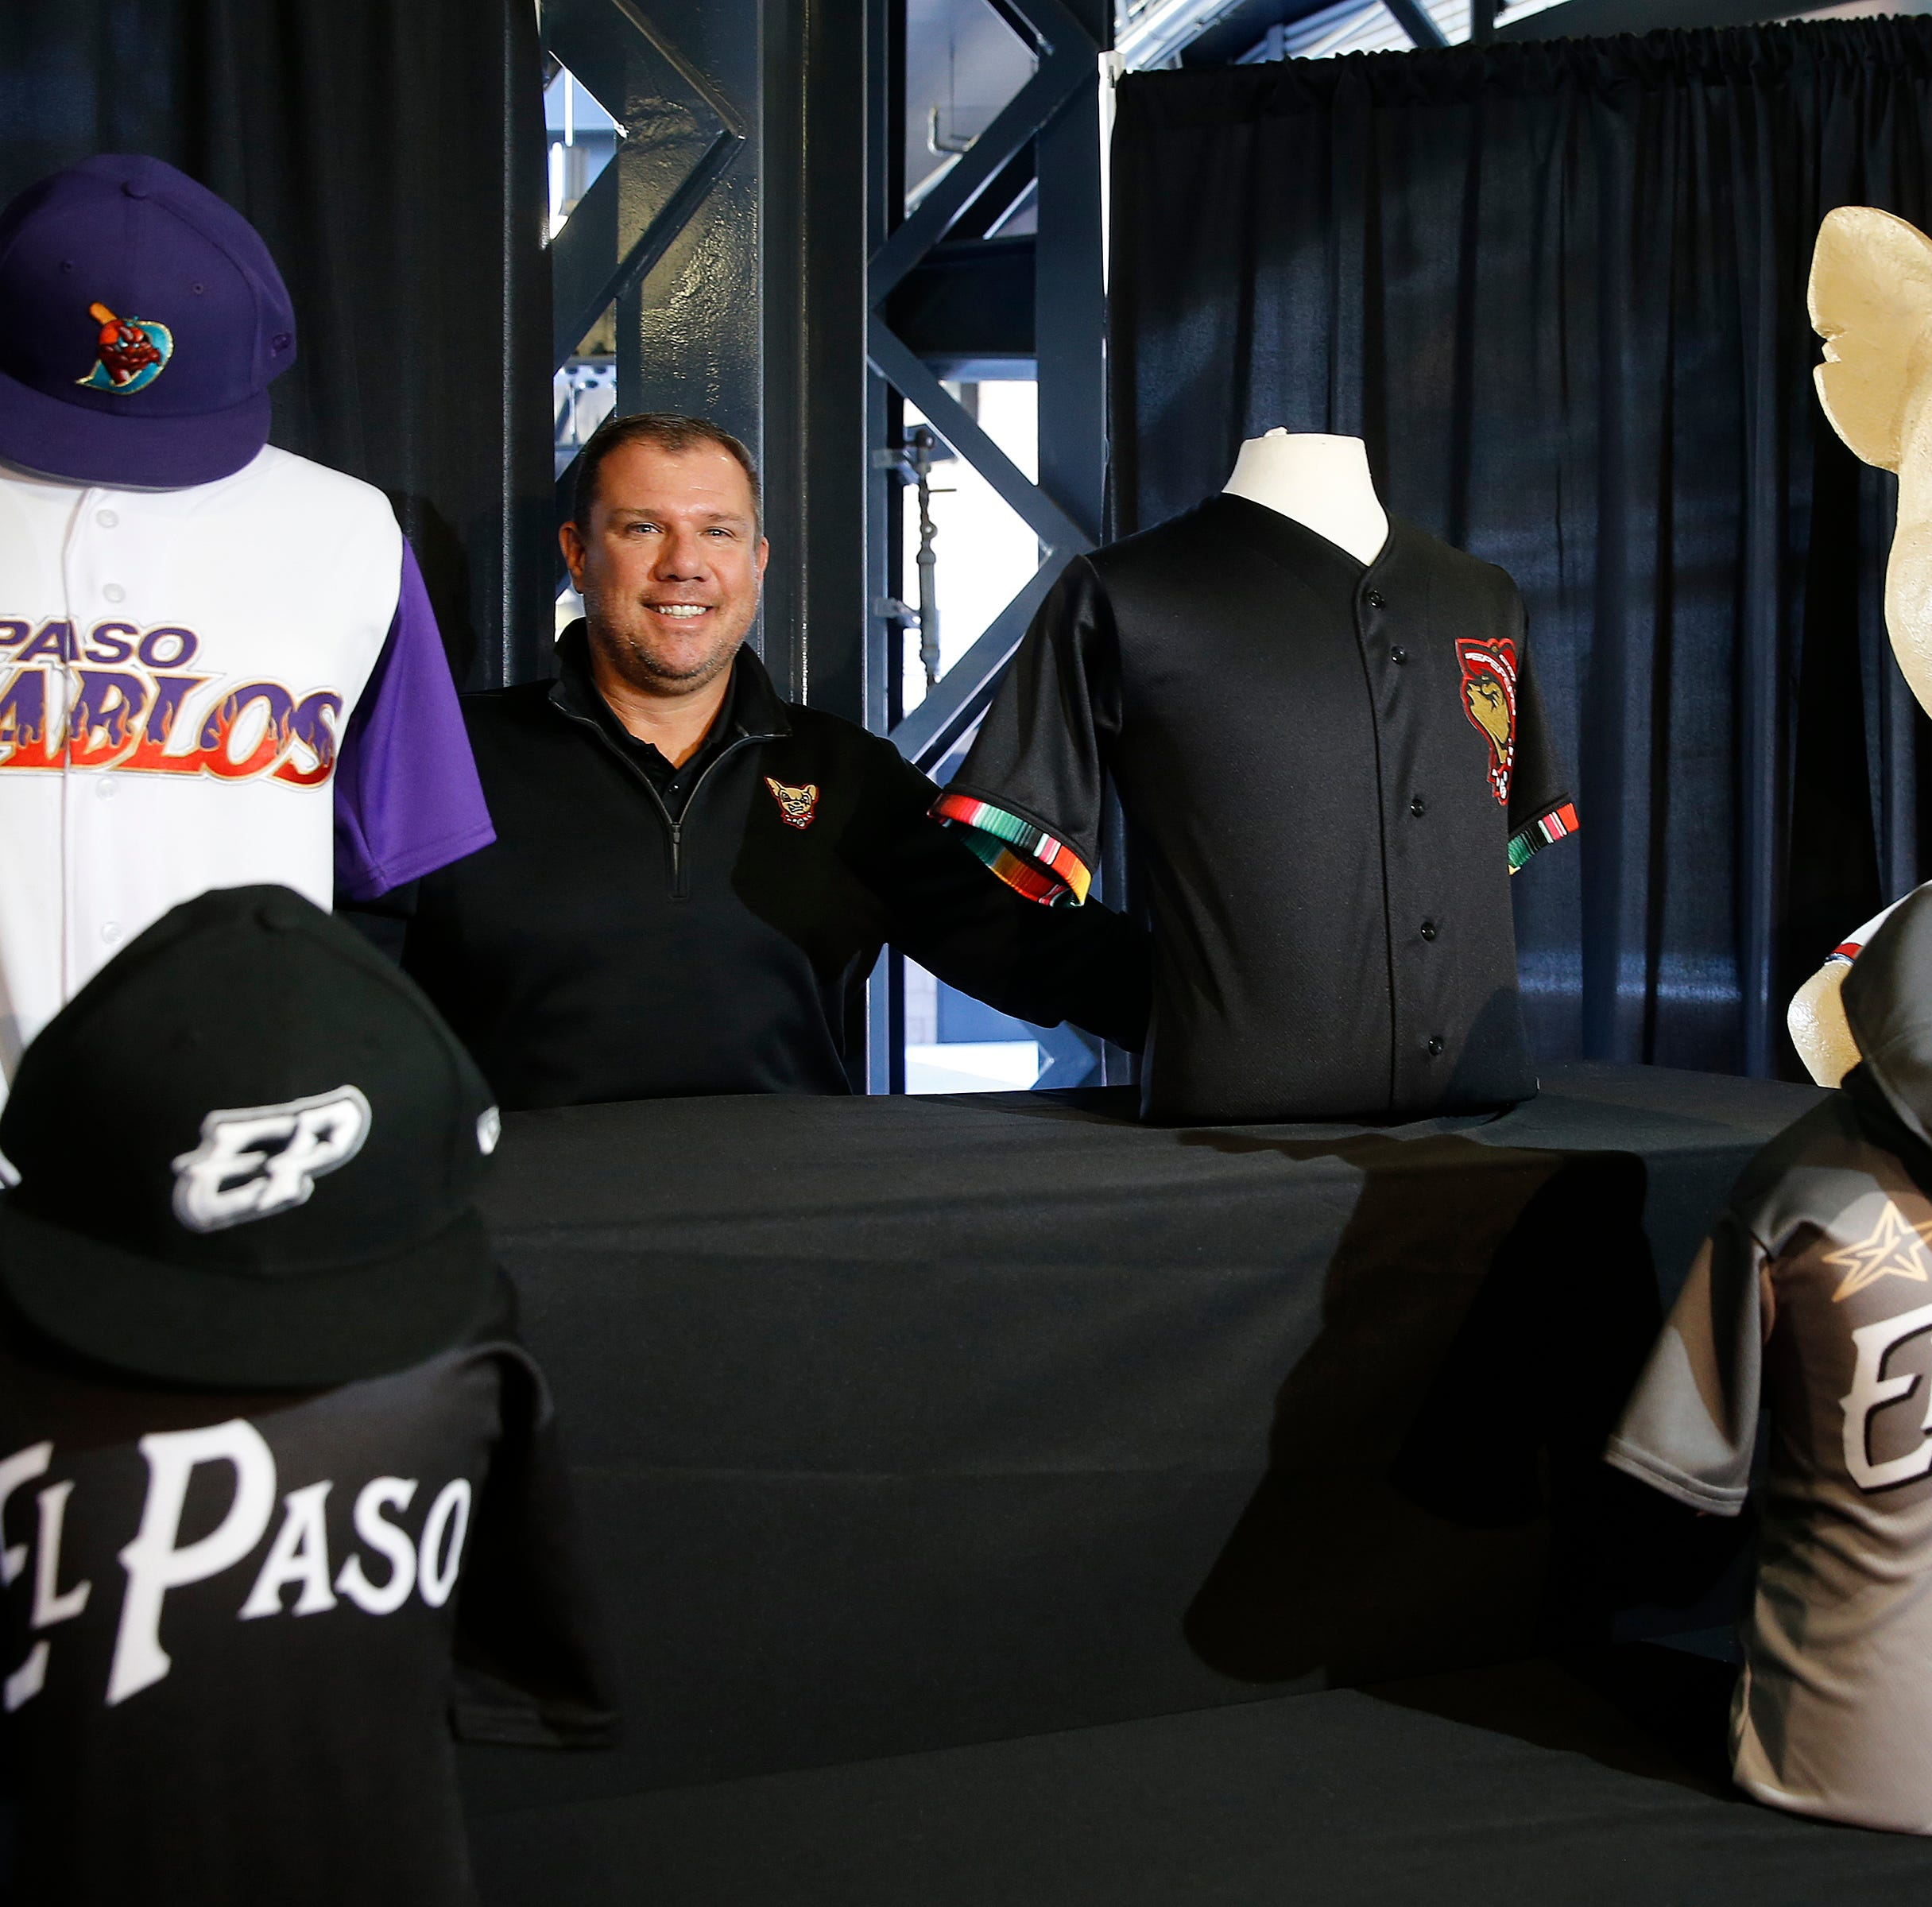 El Paso's Triple-A Chihuahuas unveil new jerseys, logo for 2019 All-Star season